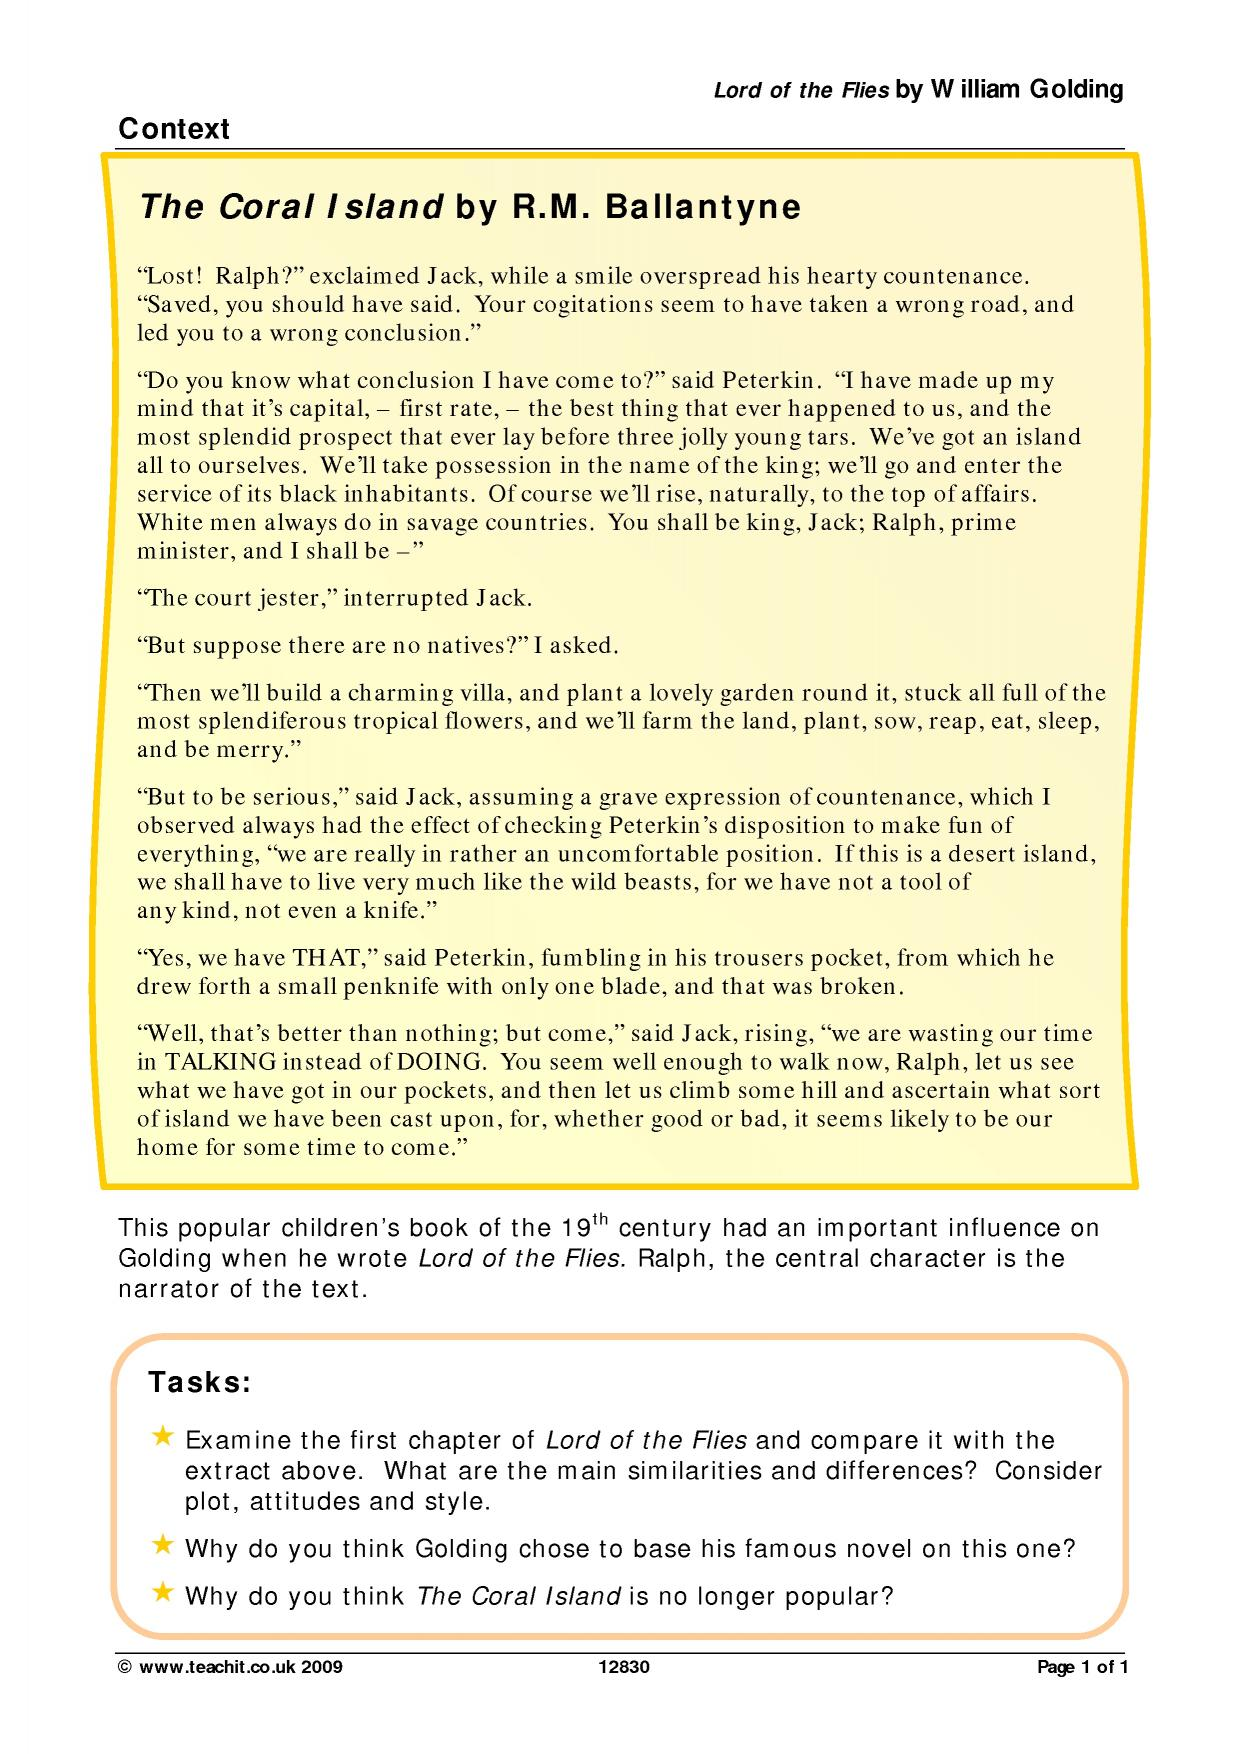 Ks4 lord of the flies by william golding teachit english 6 preview buycottarizona